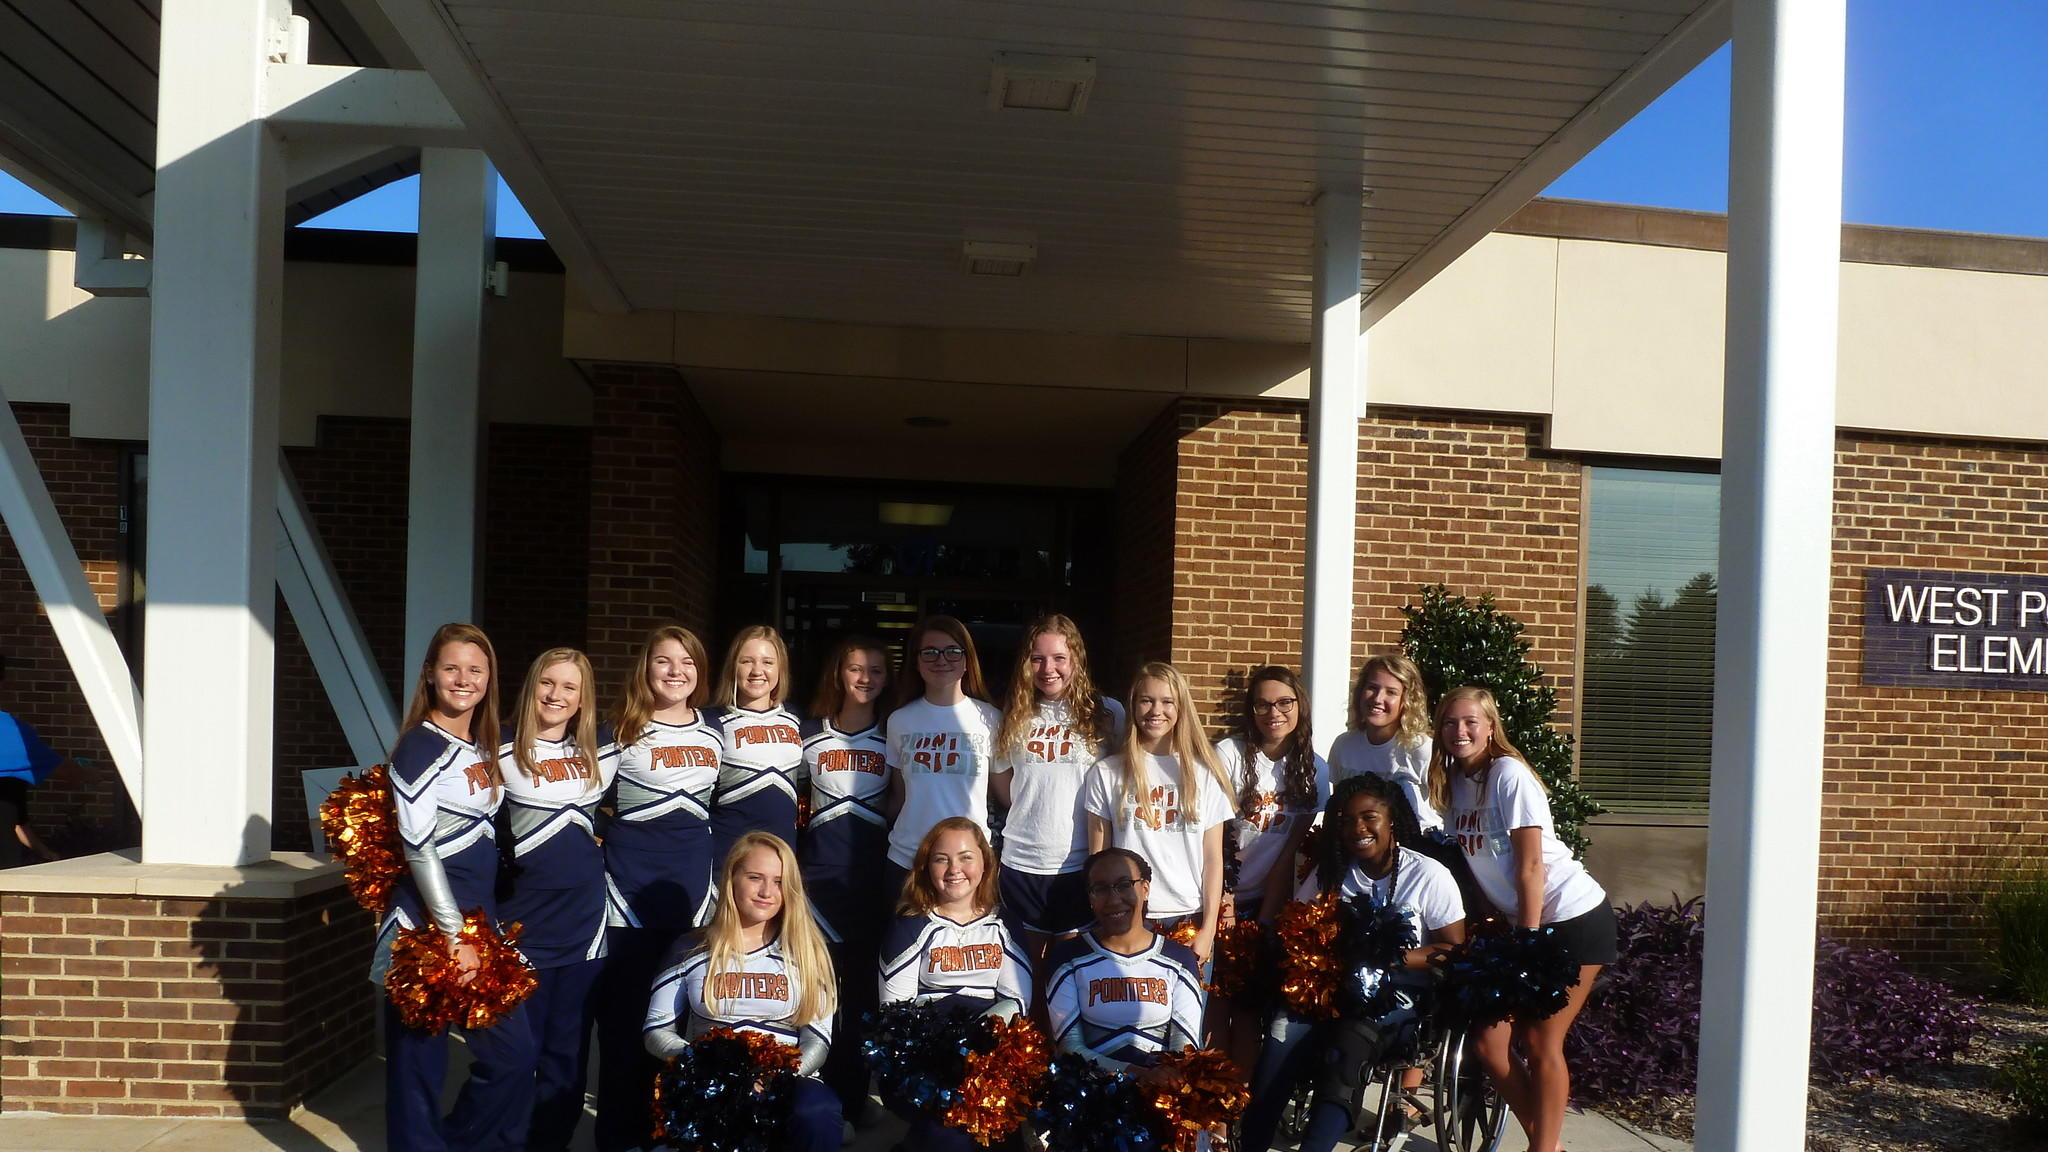 Cheerleaders welcome students to school